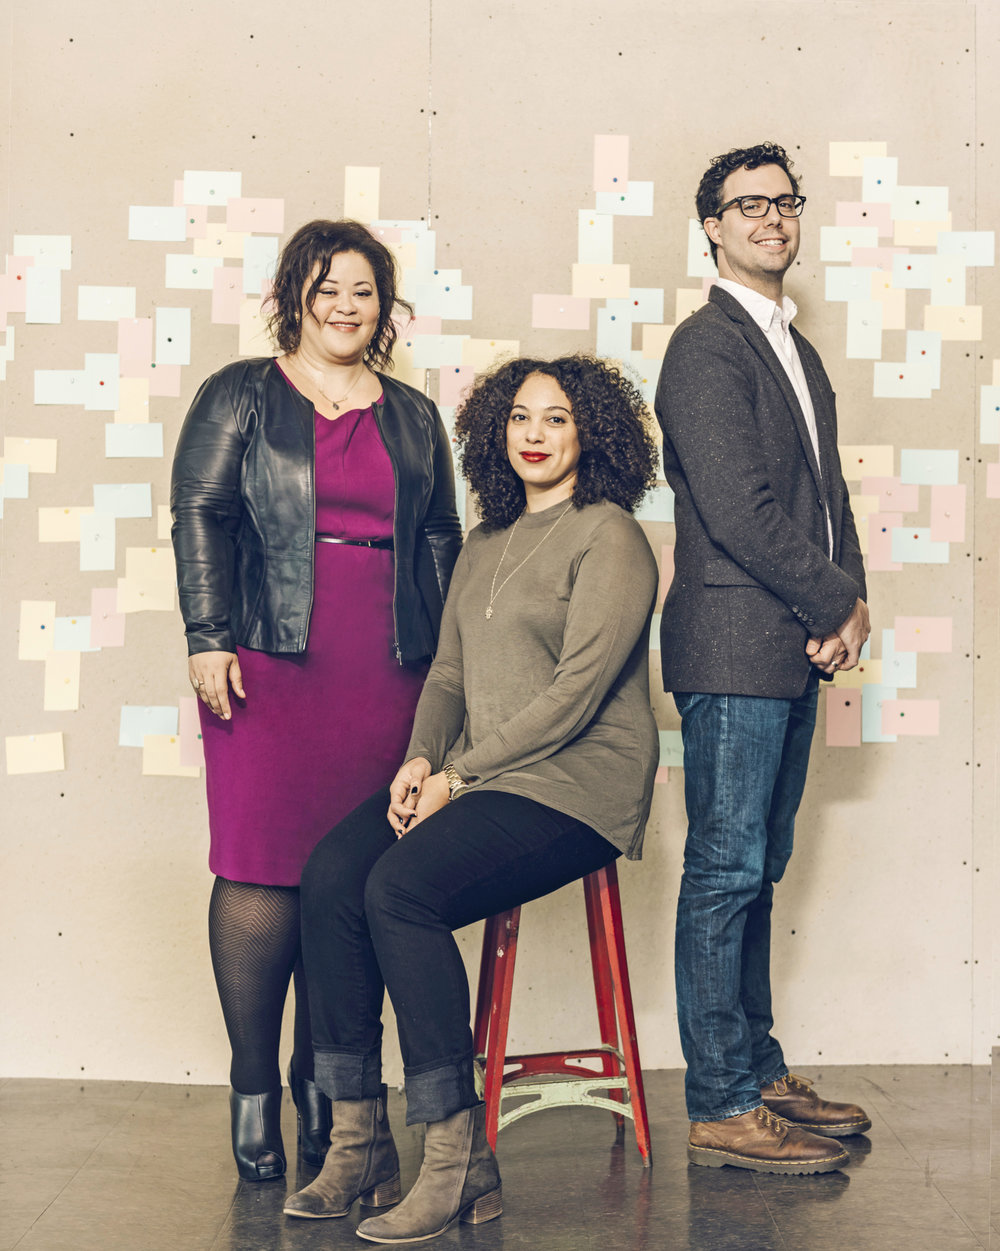 D E S T I N A T I O N  D C     Robin McClain, Cara Hedgepeth , and  Andrew O'Connor  Washington, DC Marketers & Storytellers    Washington, DC is much more than the nation's capital. We're on a mission to tell visitors (and remind locals) that this city has everything, from food and culture adventures, pop-up shops to Michelin-rated dining and exciting neighborhoods. We highlight amazing DC experiences for our audiences via the  #MyDCcool hashtag .   What inspires your team, re: DC creative community?    There's always something creative going on in DC, so we try to share as much as we can with event-seekers on washington.org.   On the 2017 to-do list?    We have a big opportunity to welcome the most important international trade show in America called IPW. Through hosting IPW, our goal is to welcome increased visitors (international and domestic) to experience what so many locals already know, that DC is its own vibrant, unique community worth exploring. Our stretch goal: To get every visitor riding the Metro to stand on the right side of the escalator.   www.Washington.org  IG  @VisitWashingtonDC  | Tw  @WashingtonDC  |  FB.com/WashingtonDC